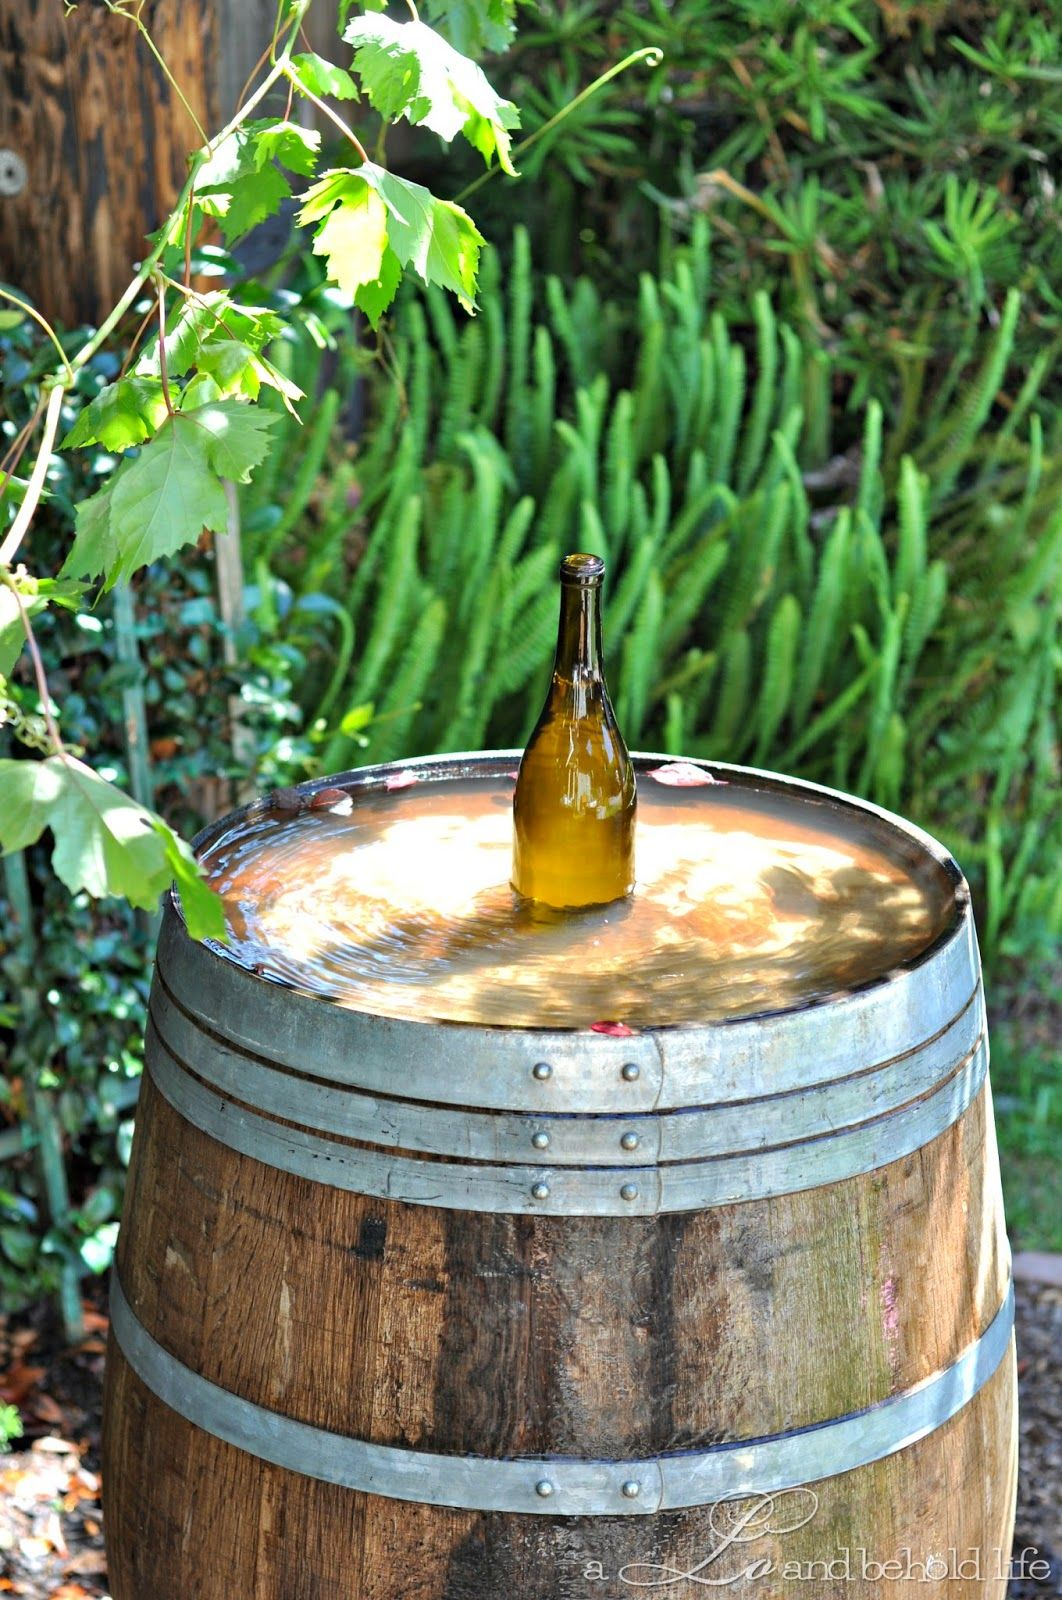 Spectacular DIY Water Feature Ideas That Will Transform Your ... on backyard gym ideas, backyard steps ideas, zen small backyard ideas, backyard gate ideas, backyard grotto ideas, backyard paving ideas, backyard stone ideas, backyard construction ideas, backyard bird bath ideas, backyard statue ideas, backyard lounge ideas, backyard outdoor shower ideas, backyard light ideas, backyard drainage ideas, backyard landscape ideas, backyard clubhouse ideas, backyard picnic area ideas, backyard bar ideas, backyard gardening ideas, backyard turf ideas,